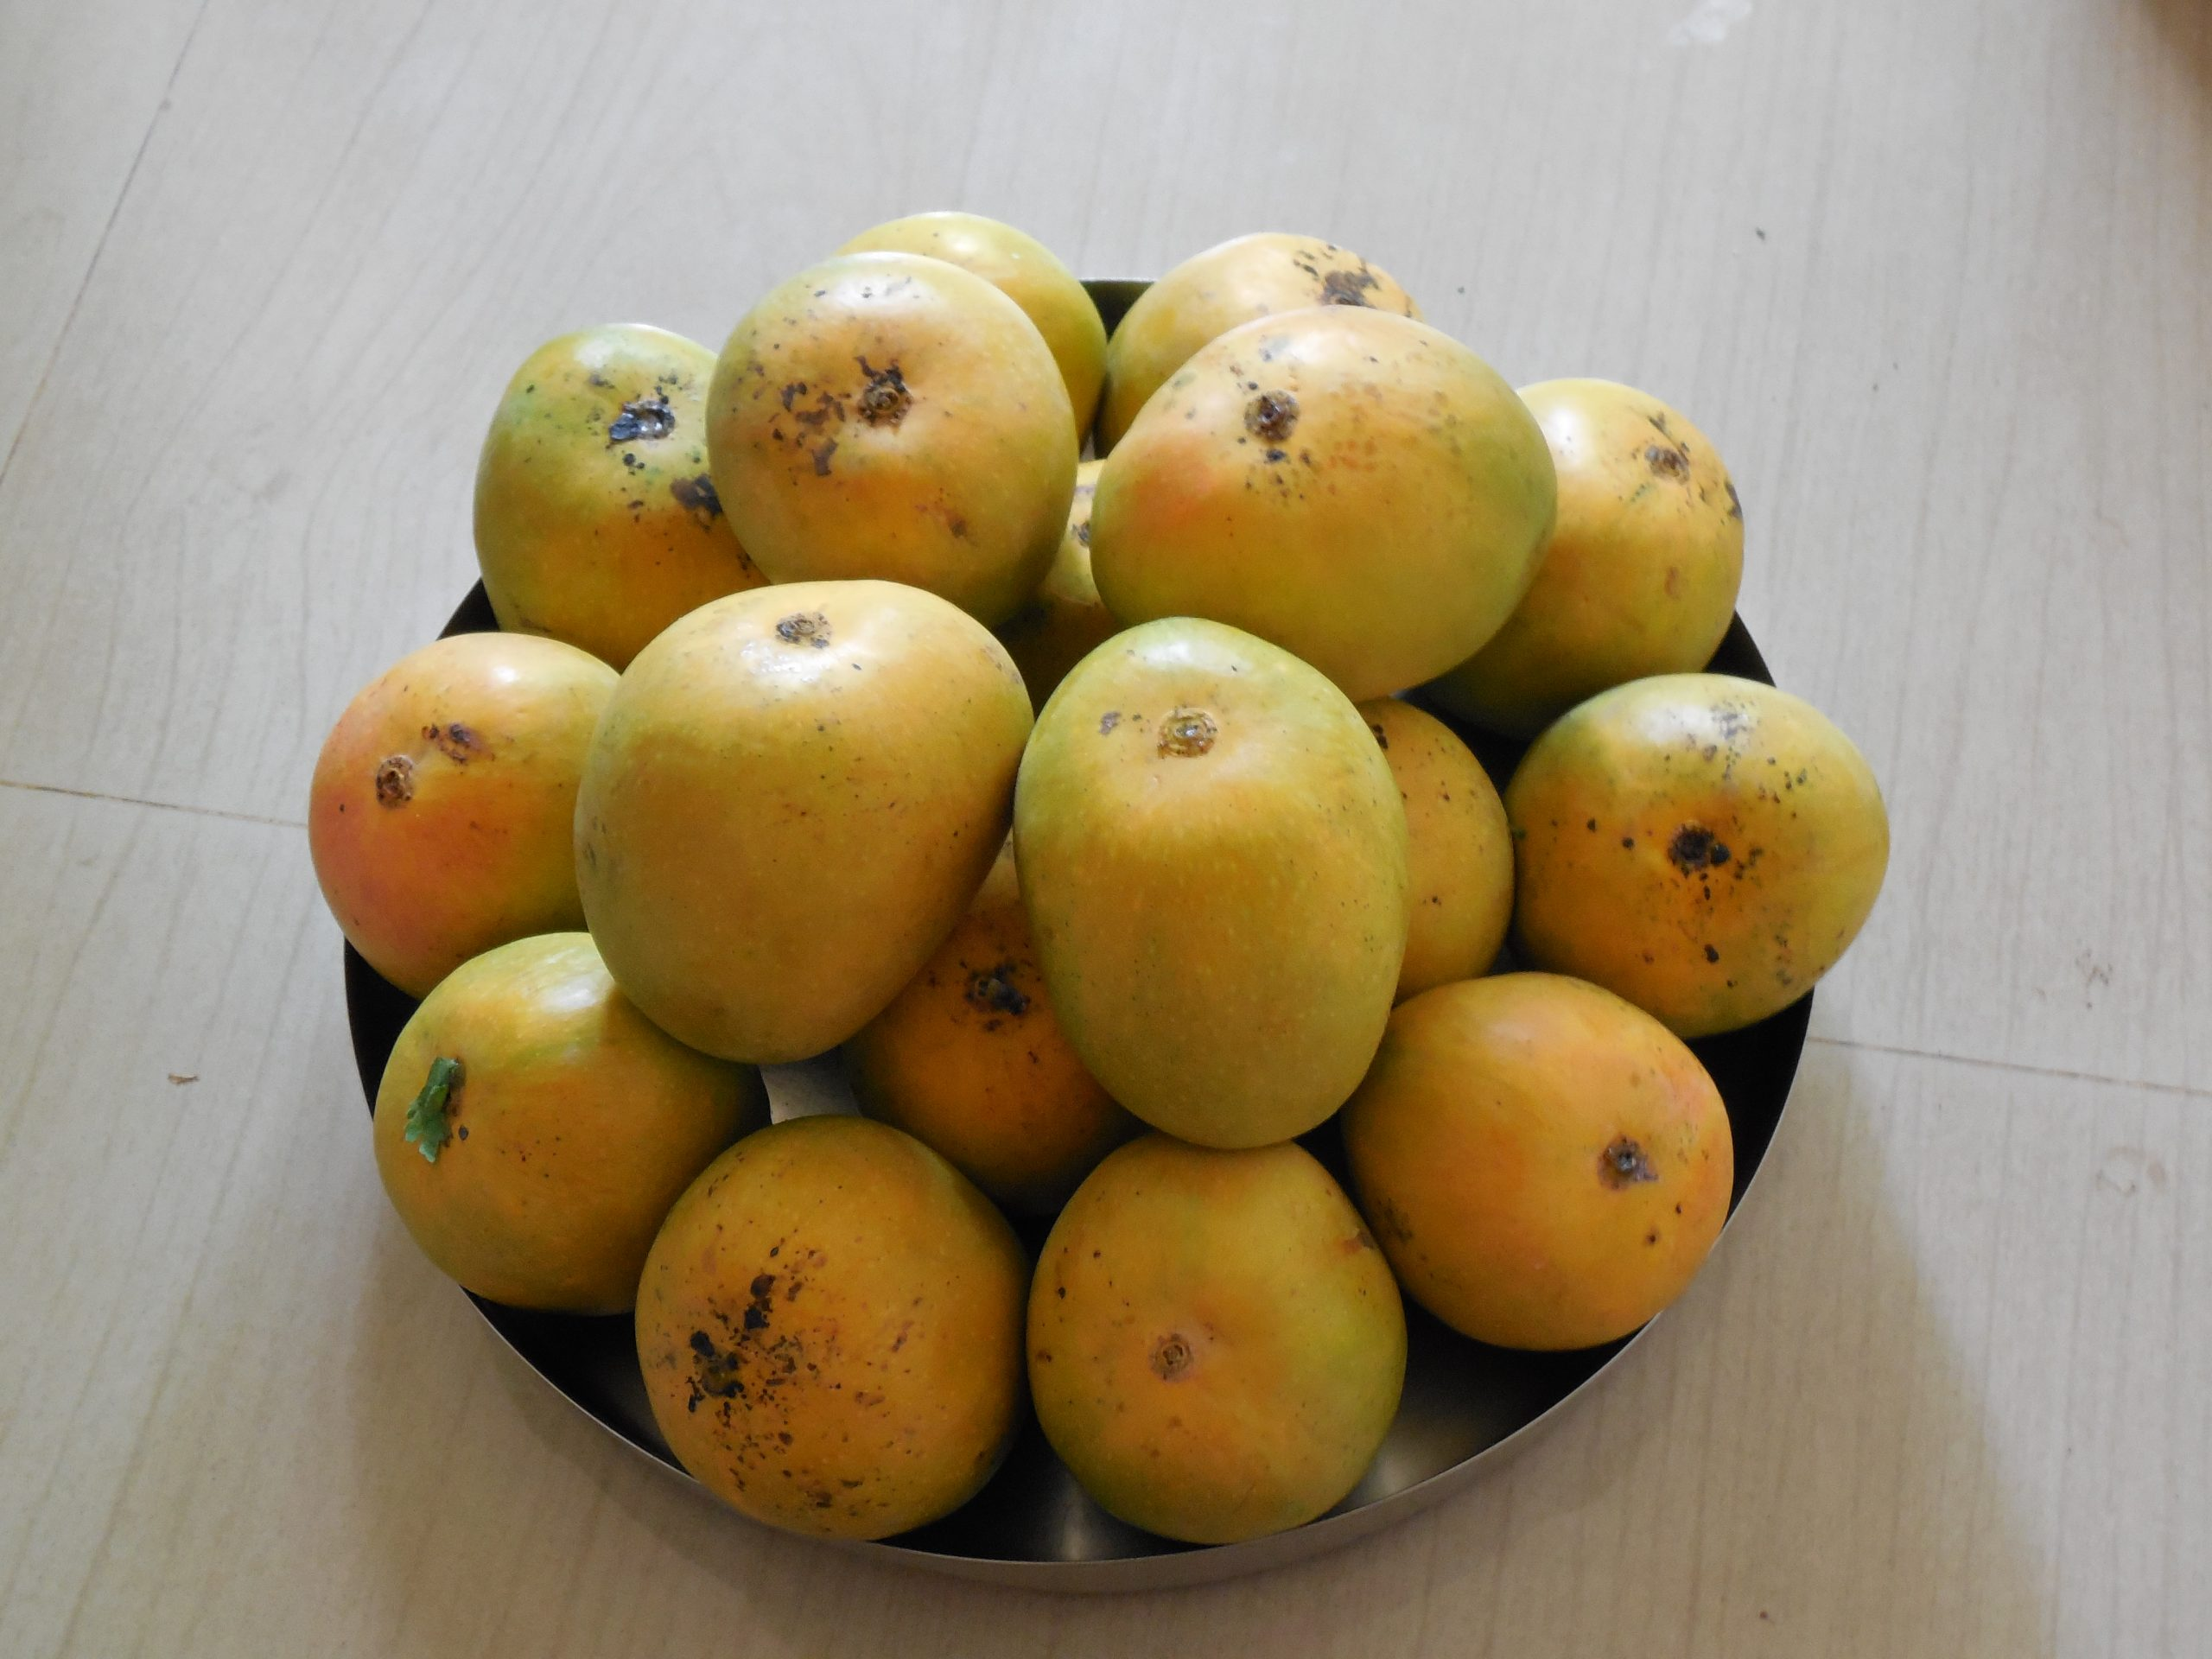 Alphonso mangoes in plate